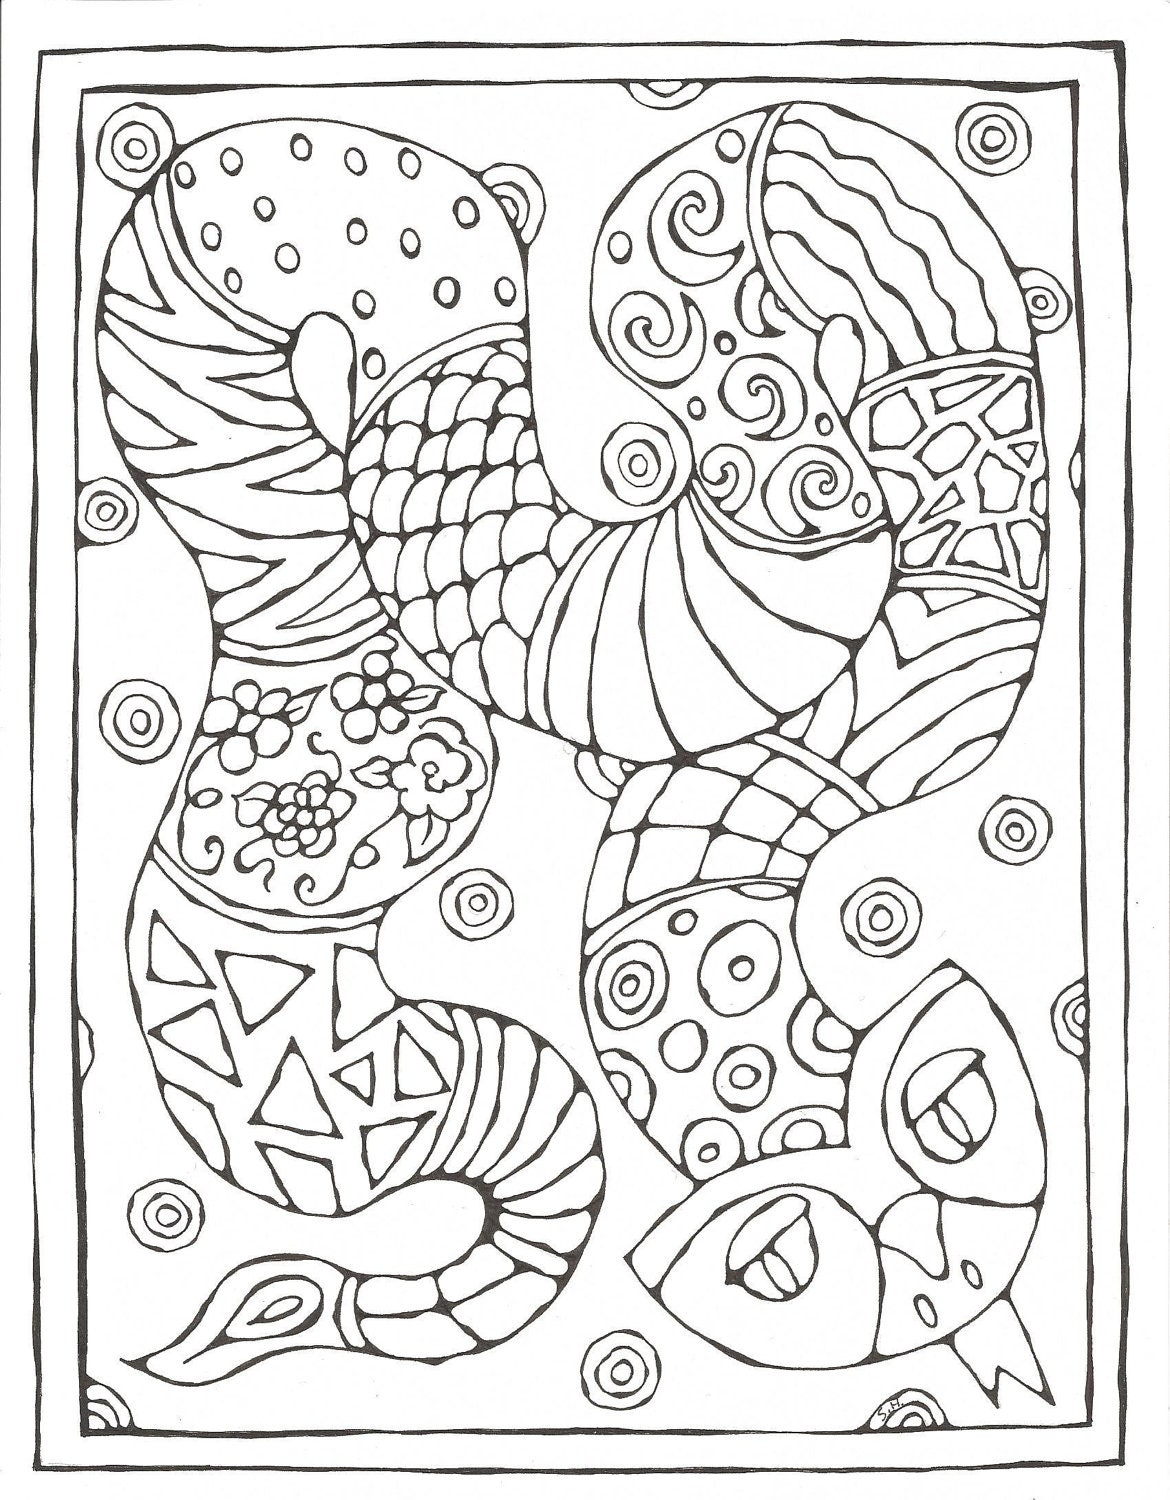 Chinese Zodiac Printable Coloring